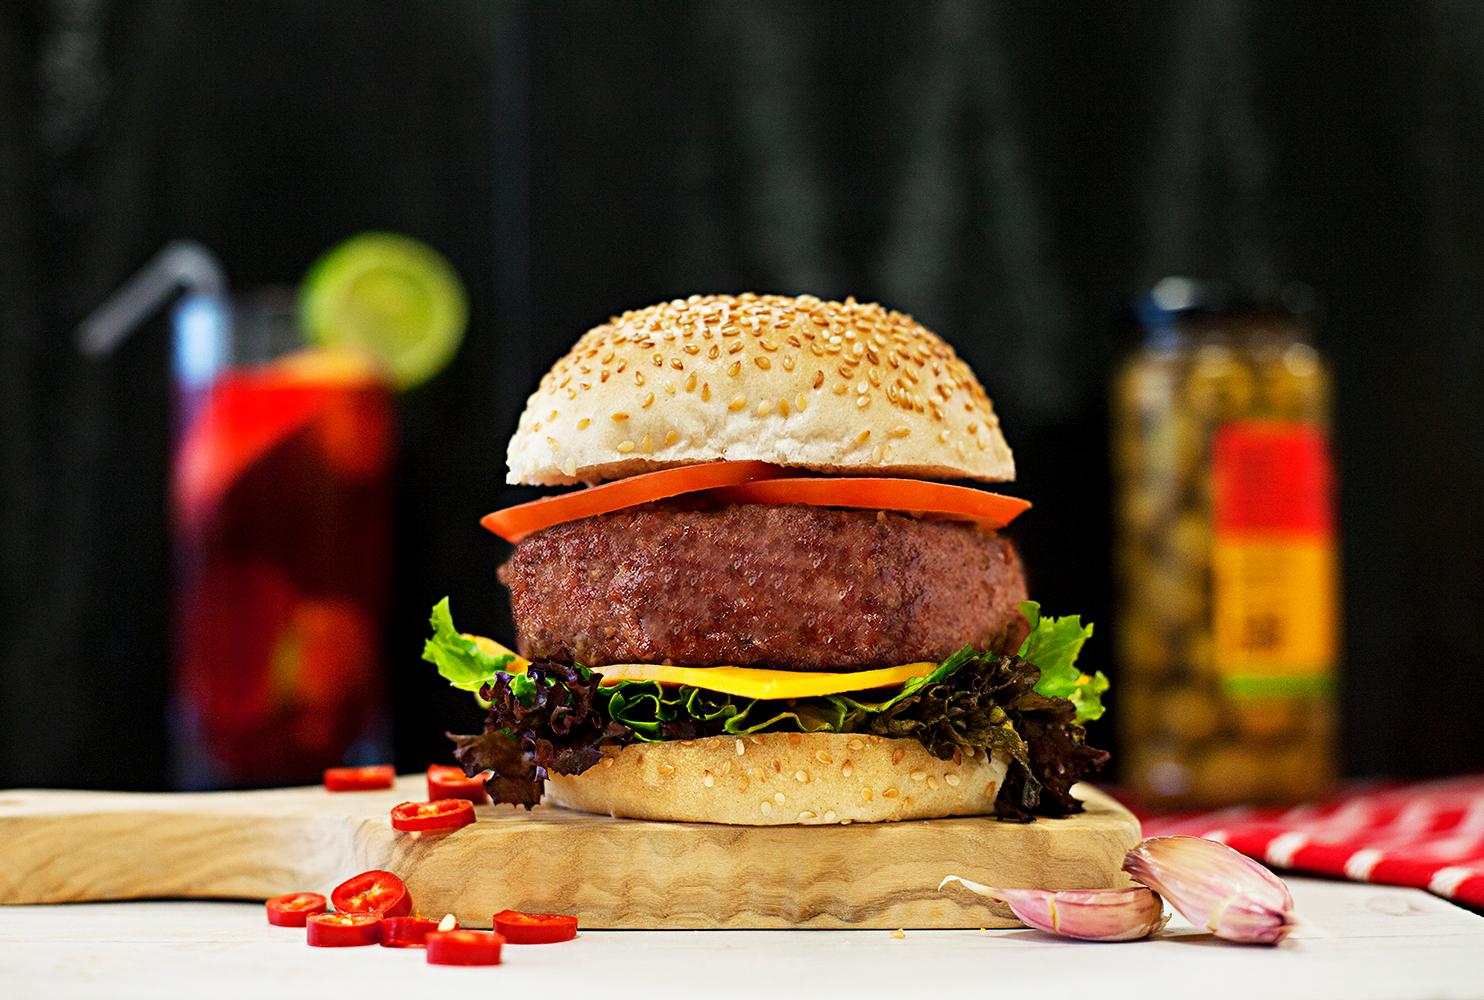 GOURMET SPANISH BURGER MIX